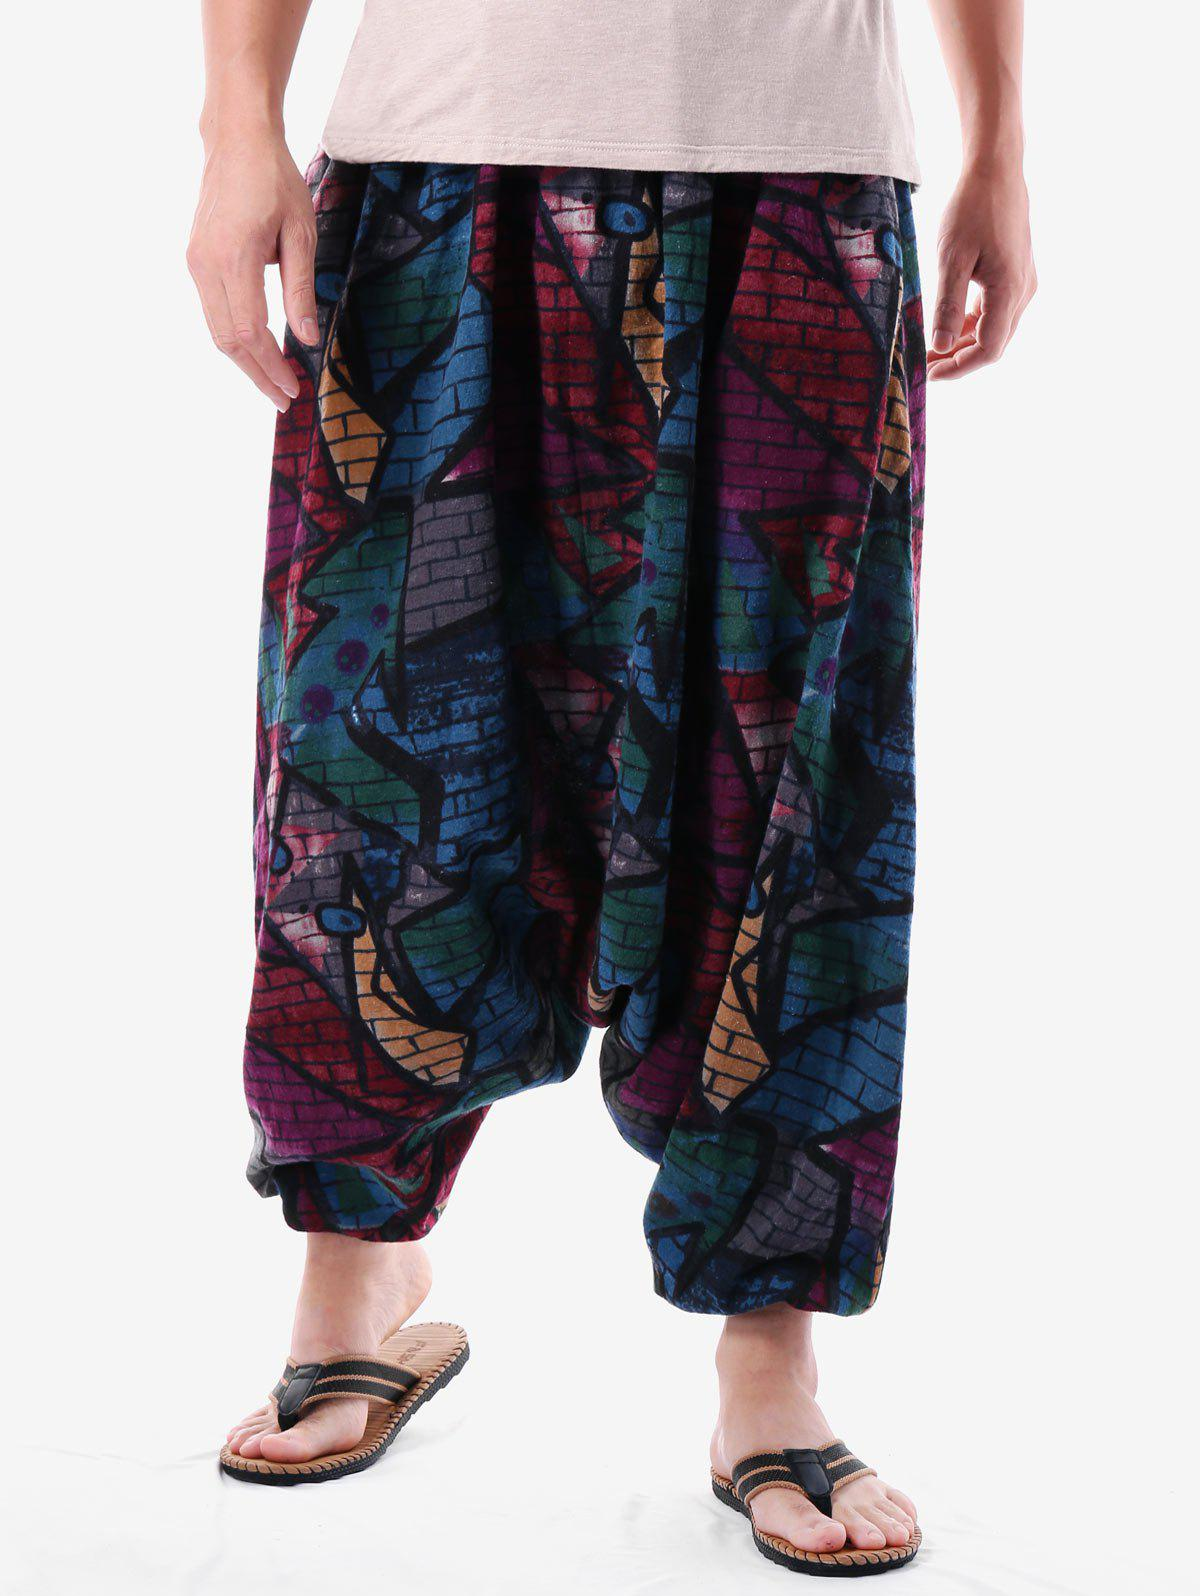 Graffiti Brick Wall Print Casual Harem Pants - BLACK L